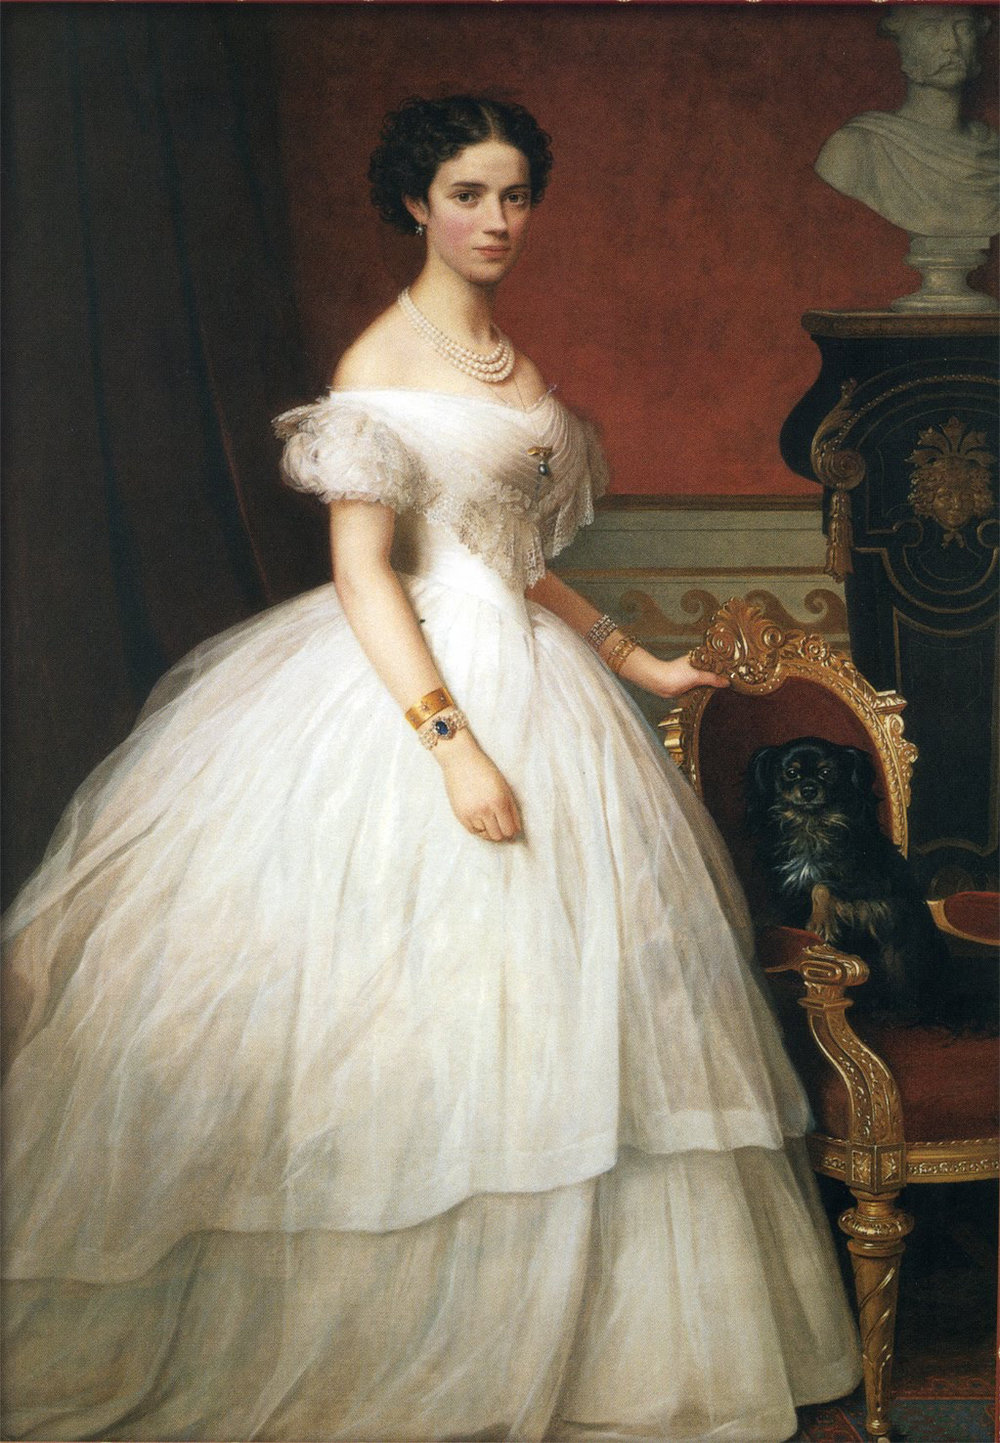 Our girl Dagmar of Denmark is modeling a beautiful example of mid 19th-century fashion - an extreme hourglass shape created by a corset, a bell-shaped crinoline, and a few layers of skirt - which permeated life on both sides of the Atlantic. These skirts reached their ultimate hugeness around this time, in the 1860s. PS: the fact that she's wearing all white is a symbol of her social fineness. Most women didn't wear this much white because, in an era where everything was still mostly hand washed, it was just too much of a pain of keep nice looking.   Portrait  of  Princess Dagmar of Denmark with her Dog,   by A. Hunæus. (Wikicommons)